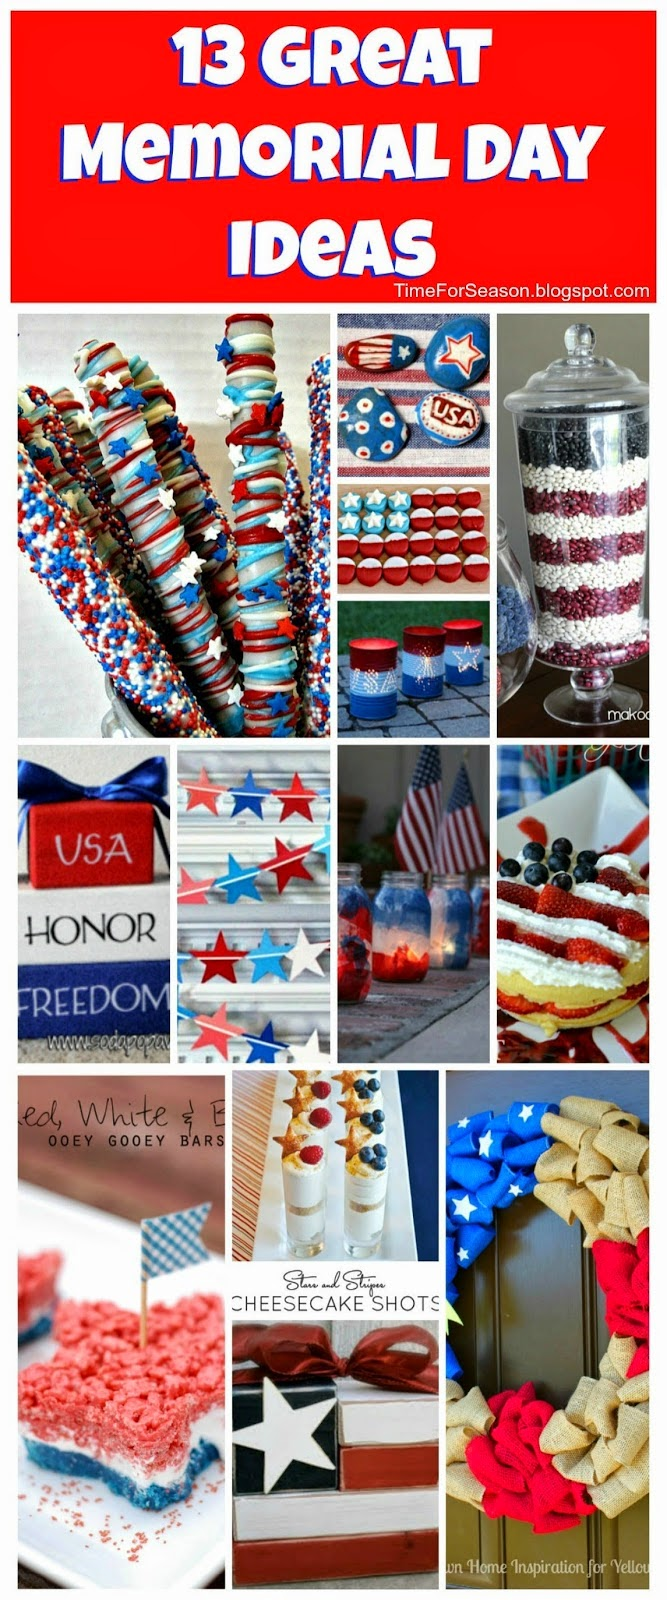 http://timeforseason.blogspot.com/2014/05/ideas-for-memorial-day.html